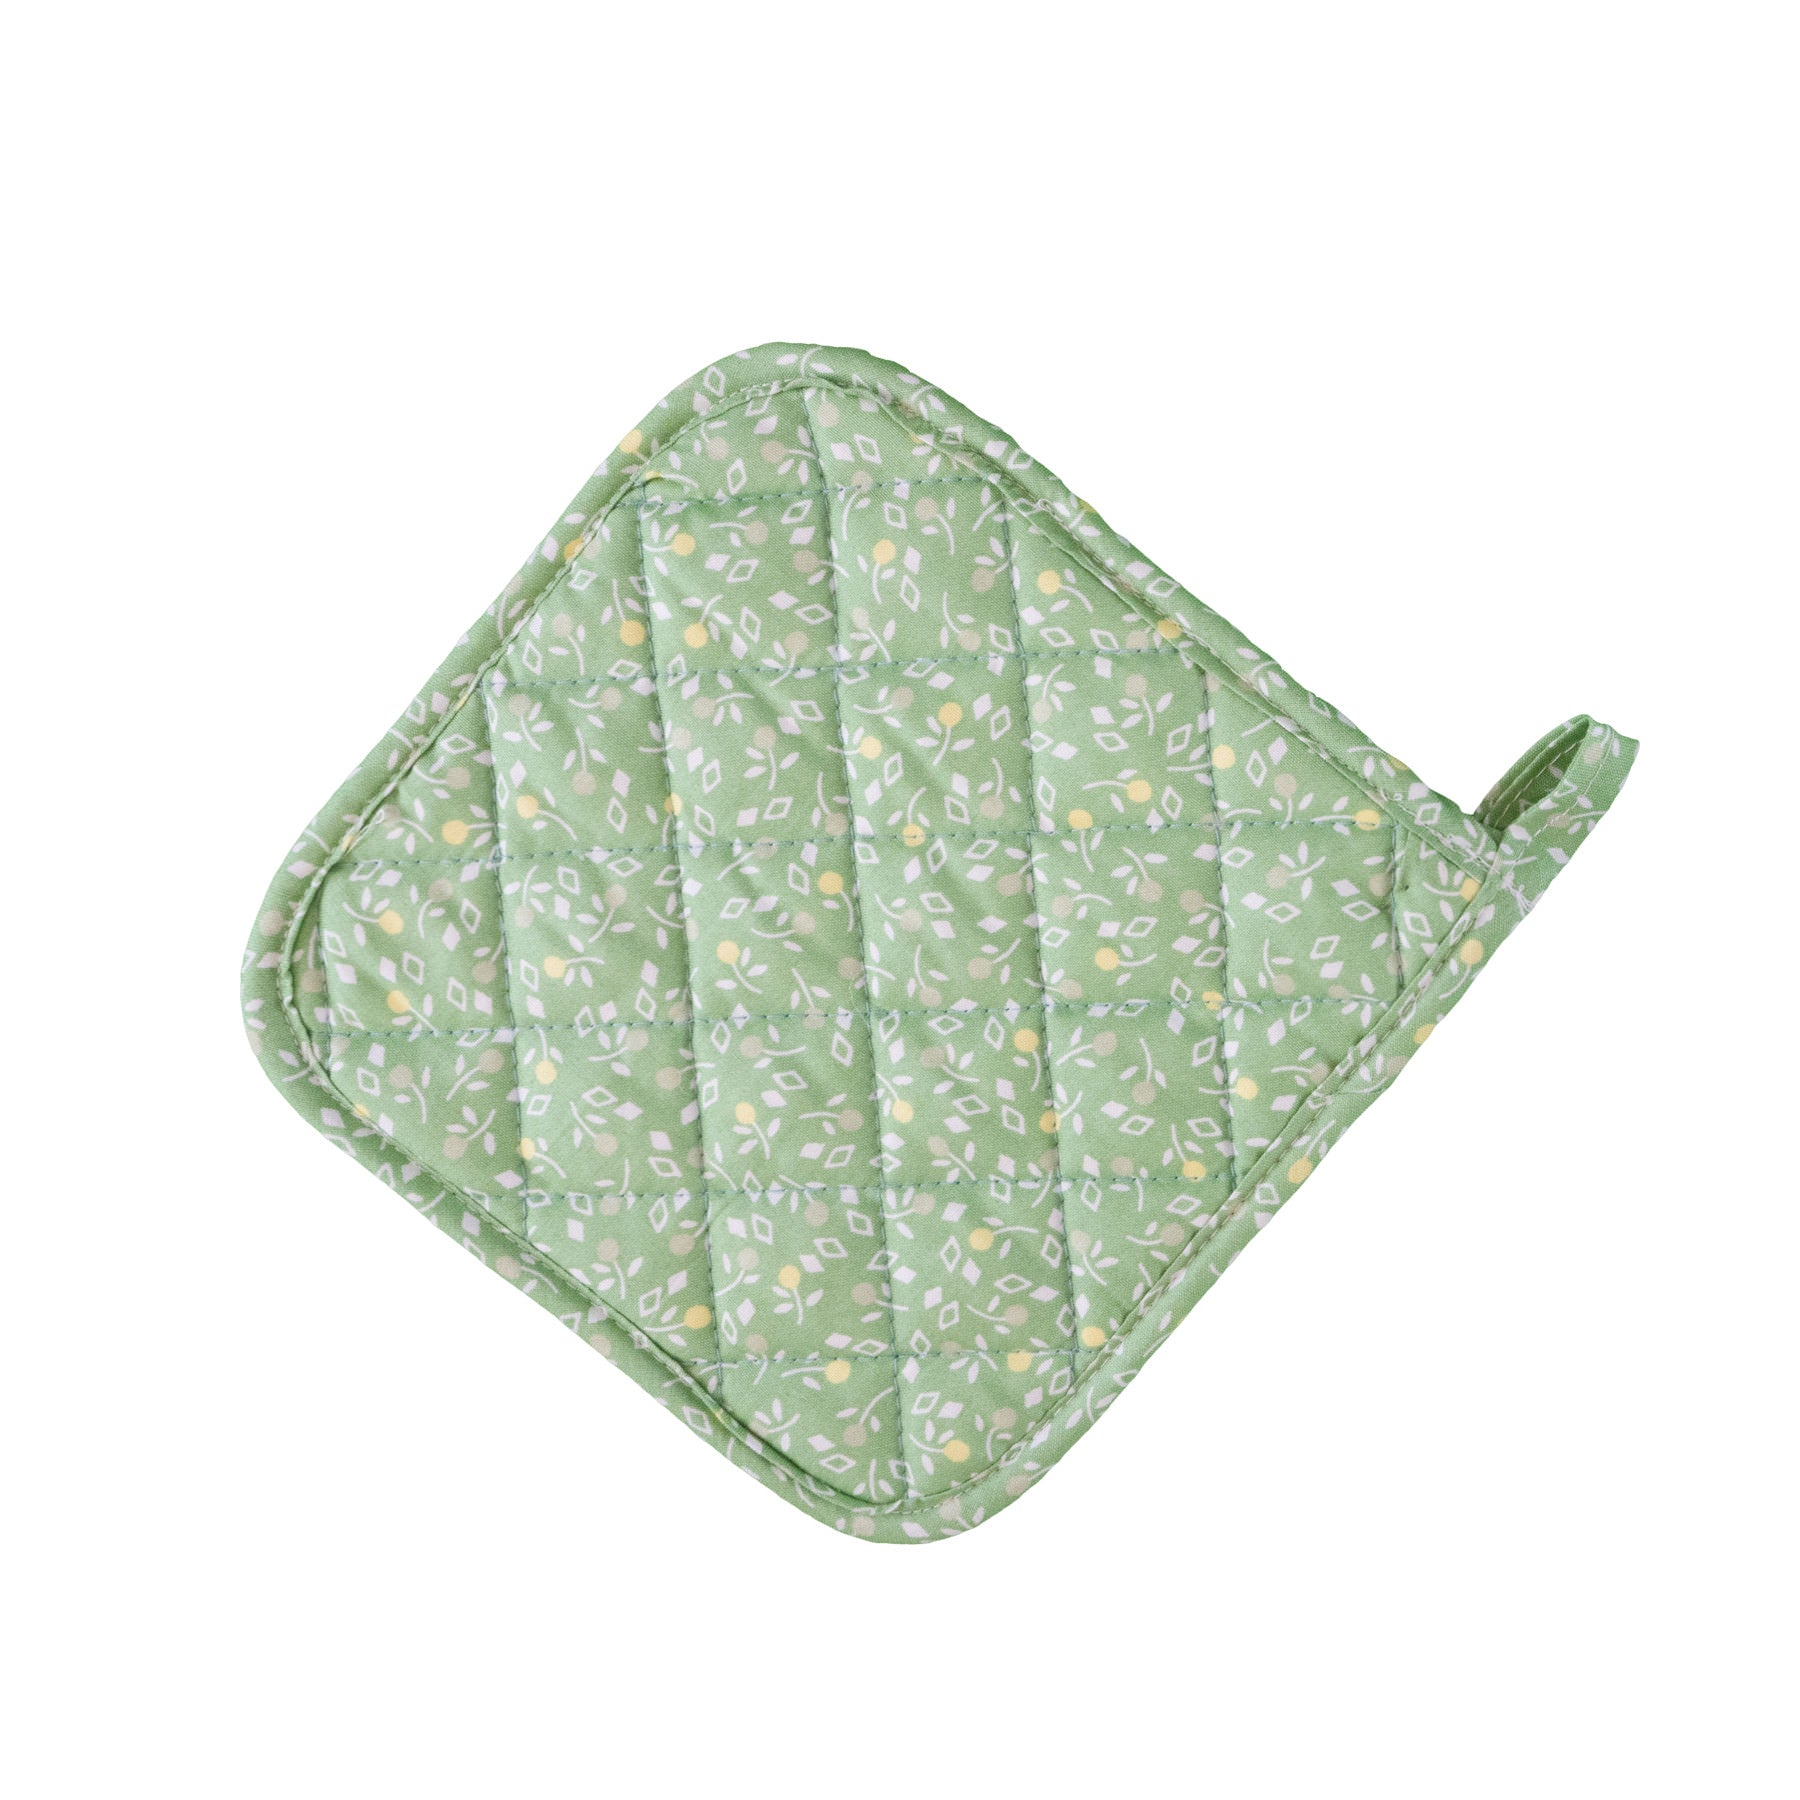 Stitch & Sparkle POT HOLDER 1 Piece Pack, Heat Resistant, 100% Cotton, Vintage, Toss Flowerlet